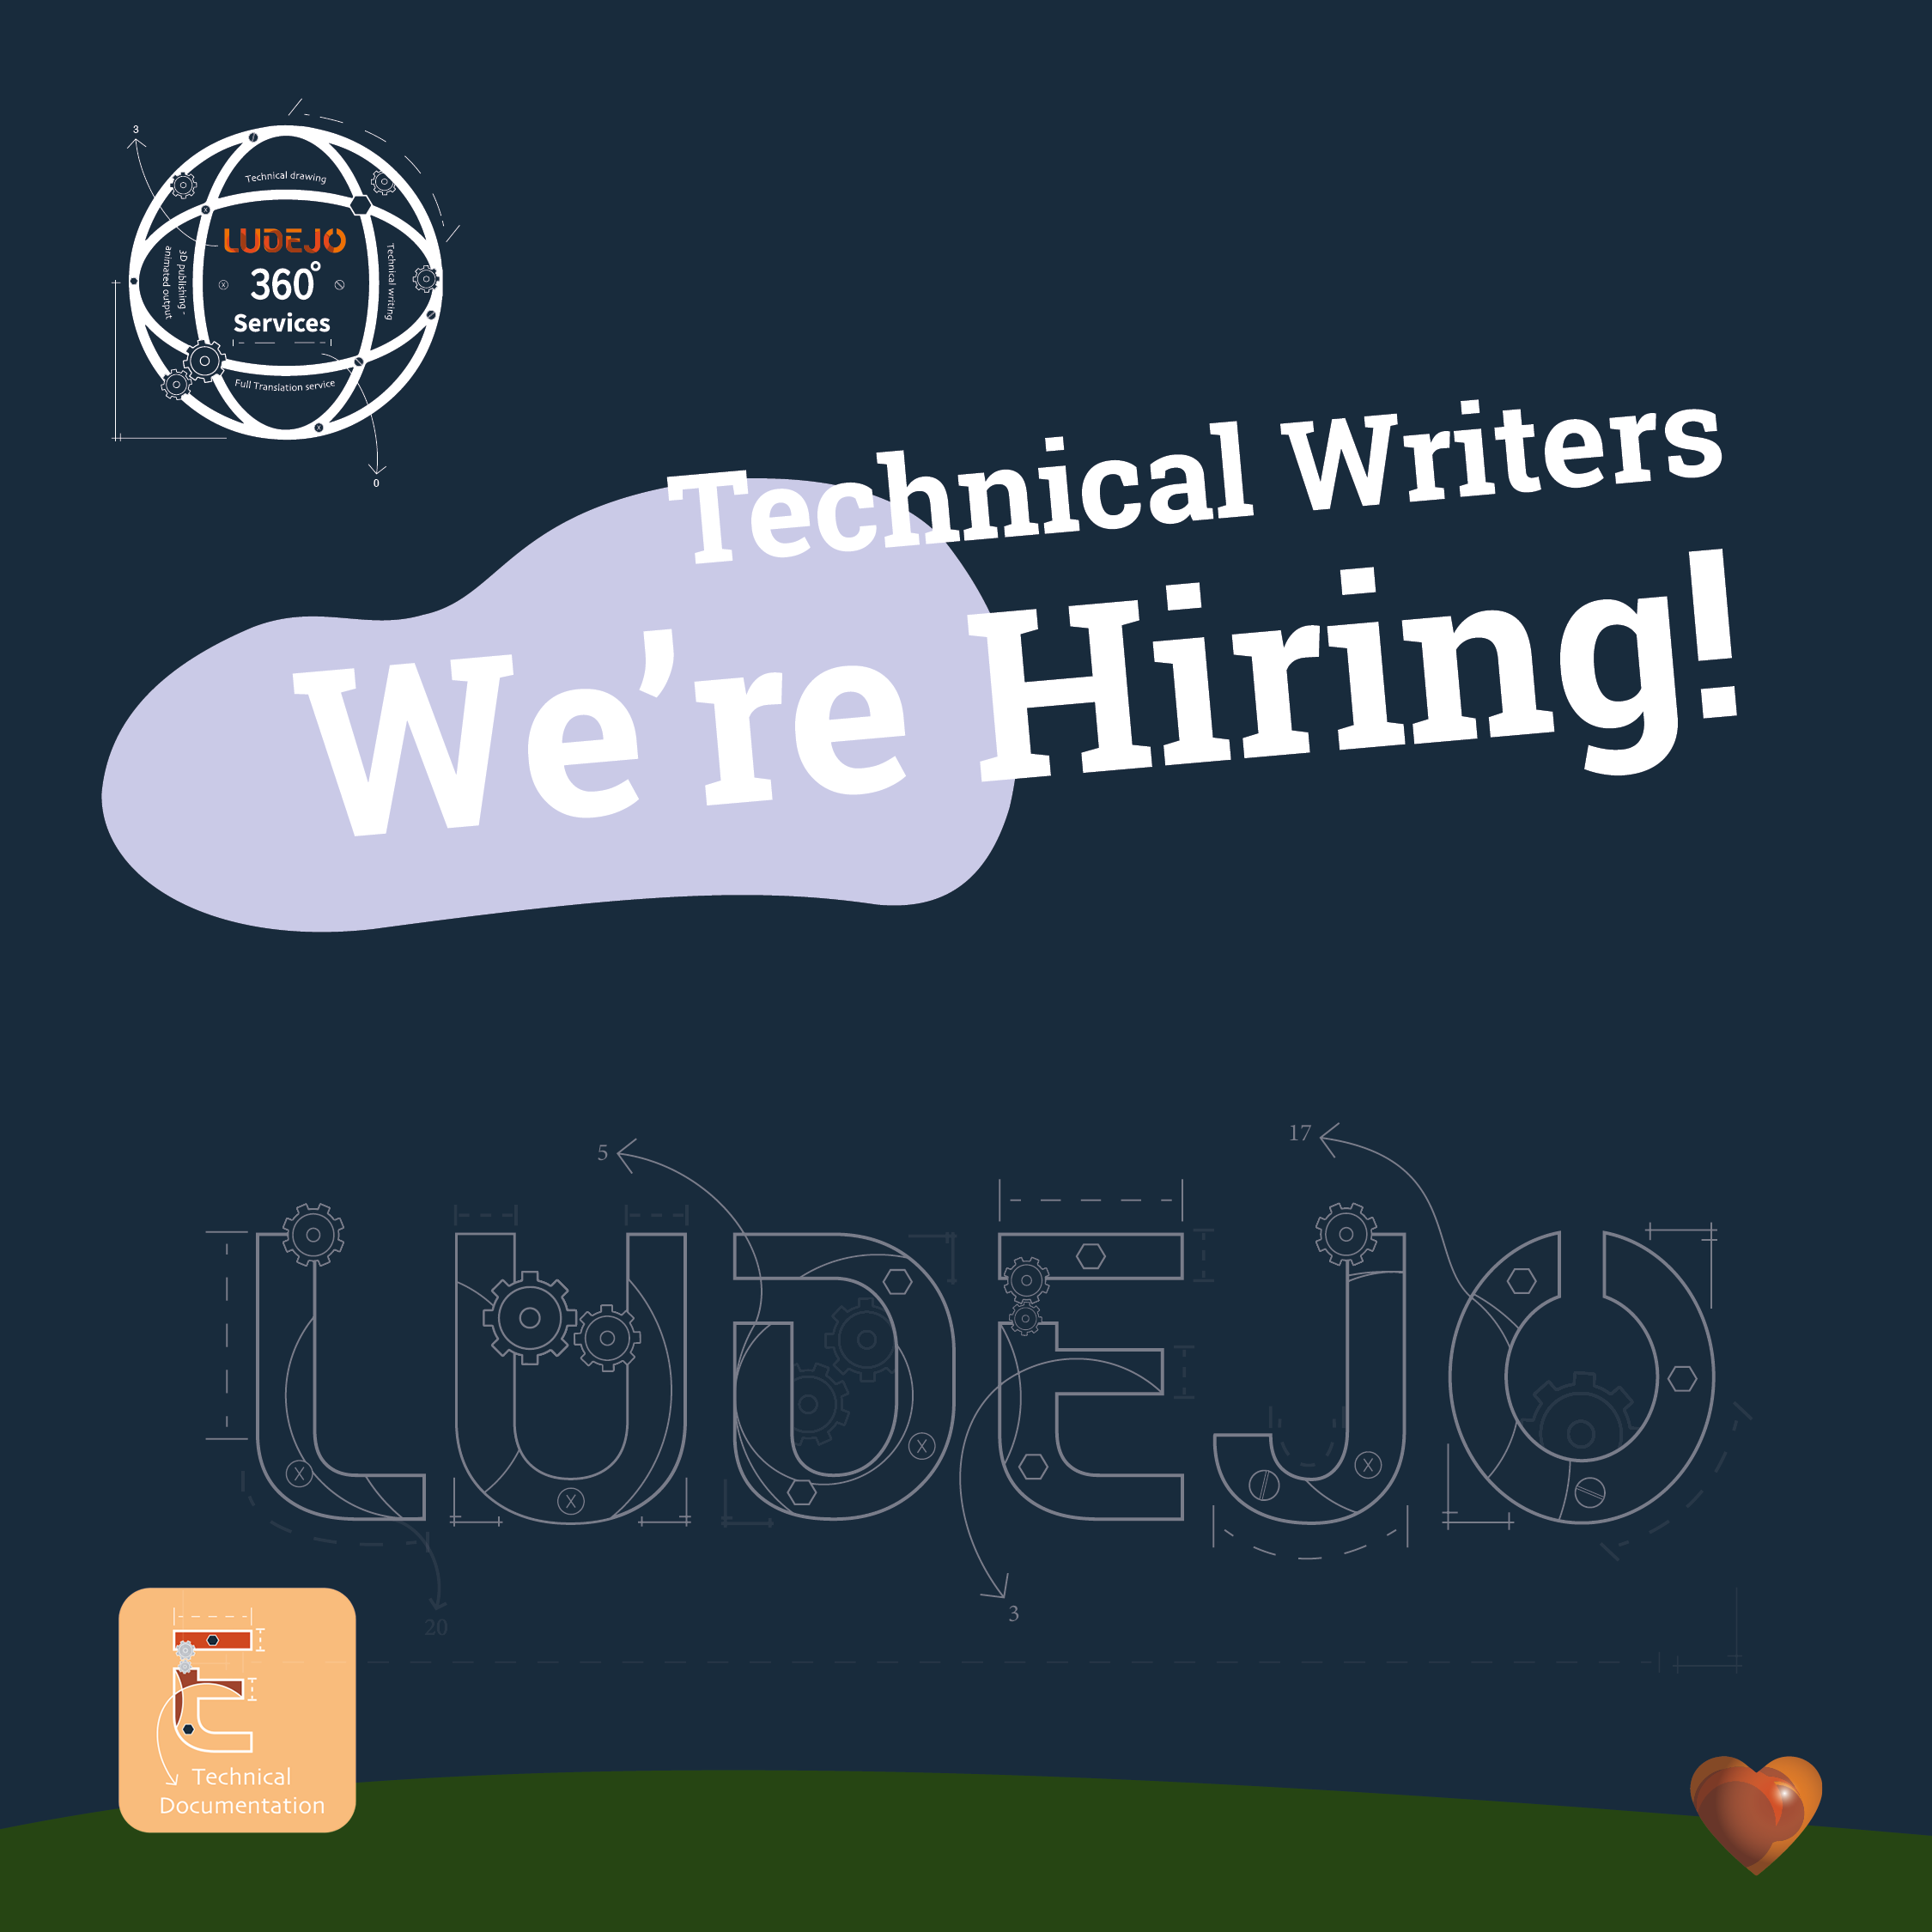 We are looking for Technical Writers! We are hiring!